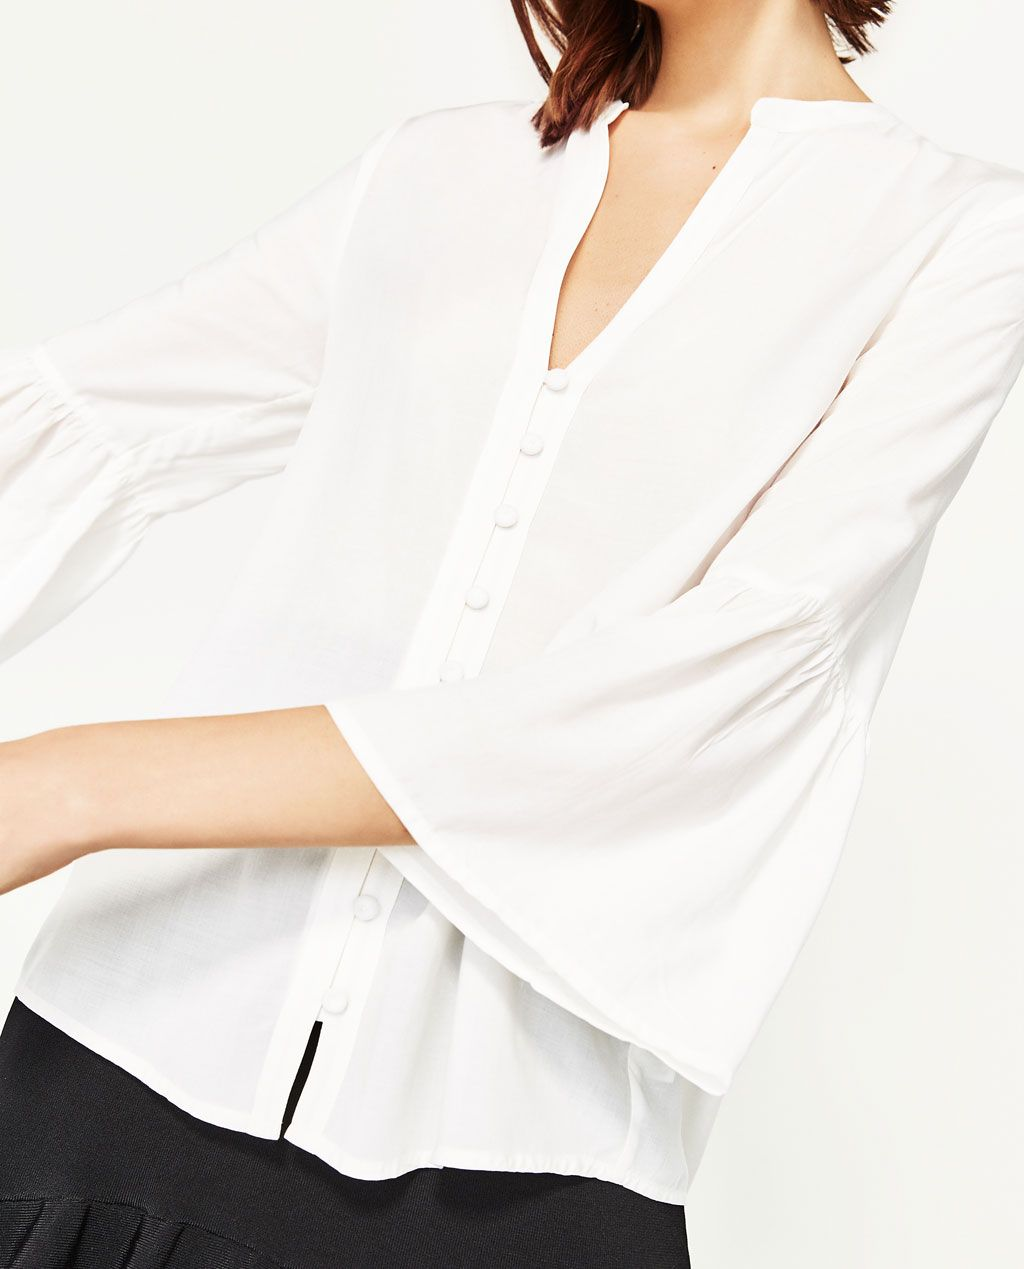 00c35ef3a7 BLOUSE WITH RUFFLE SLEEVES-View All-TOPS-WOMAN | ZARA United States ...